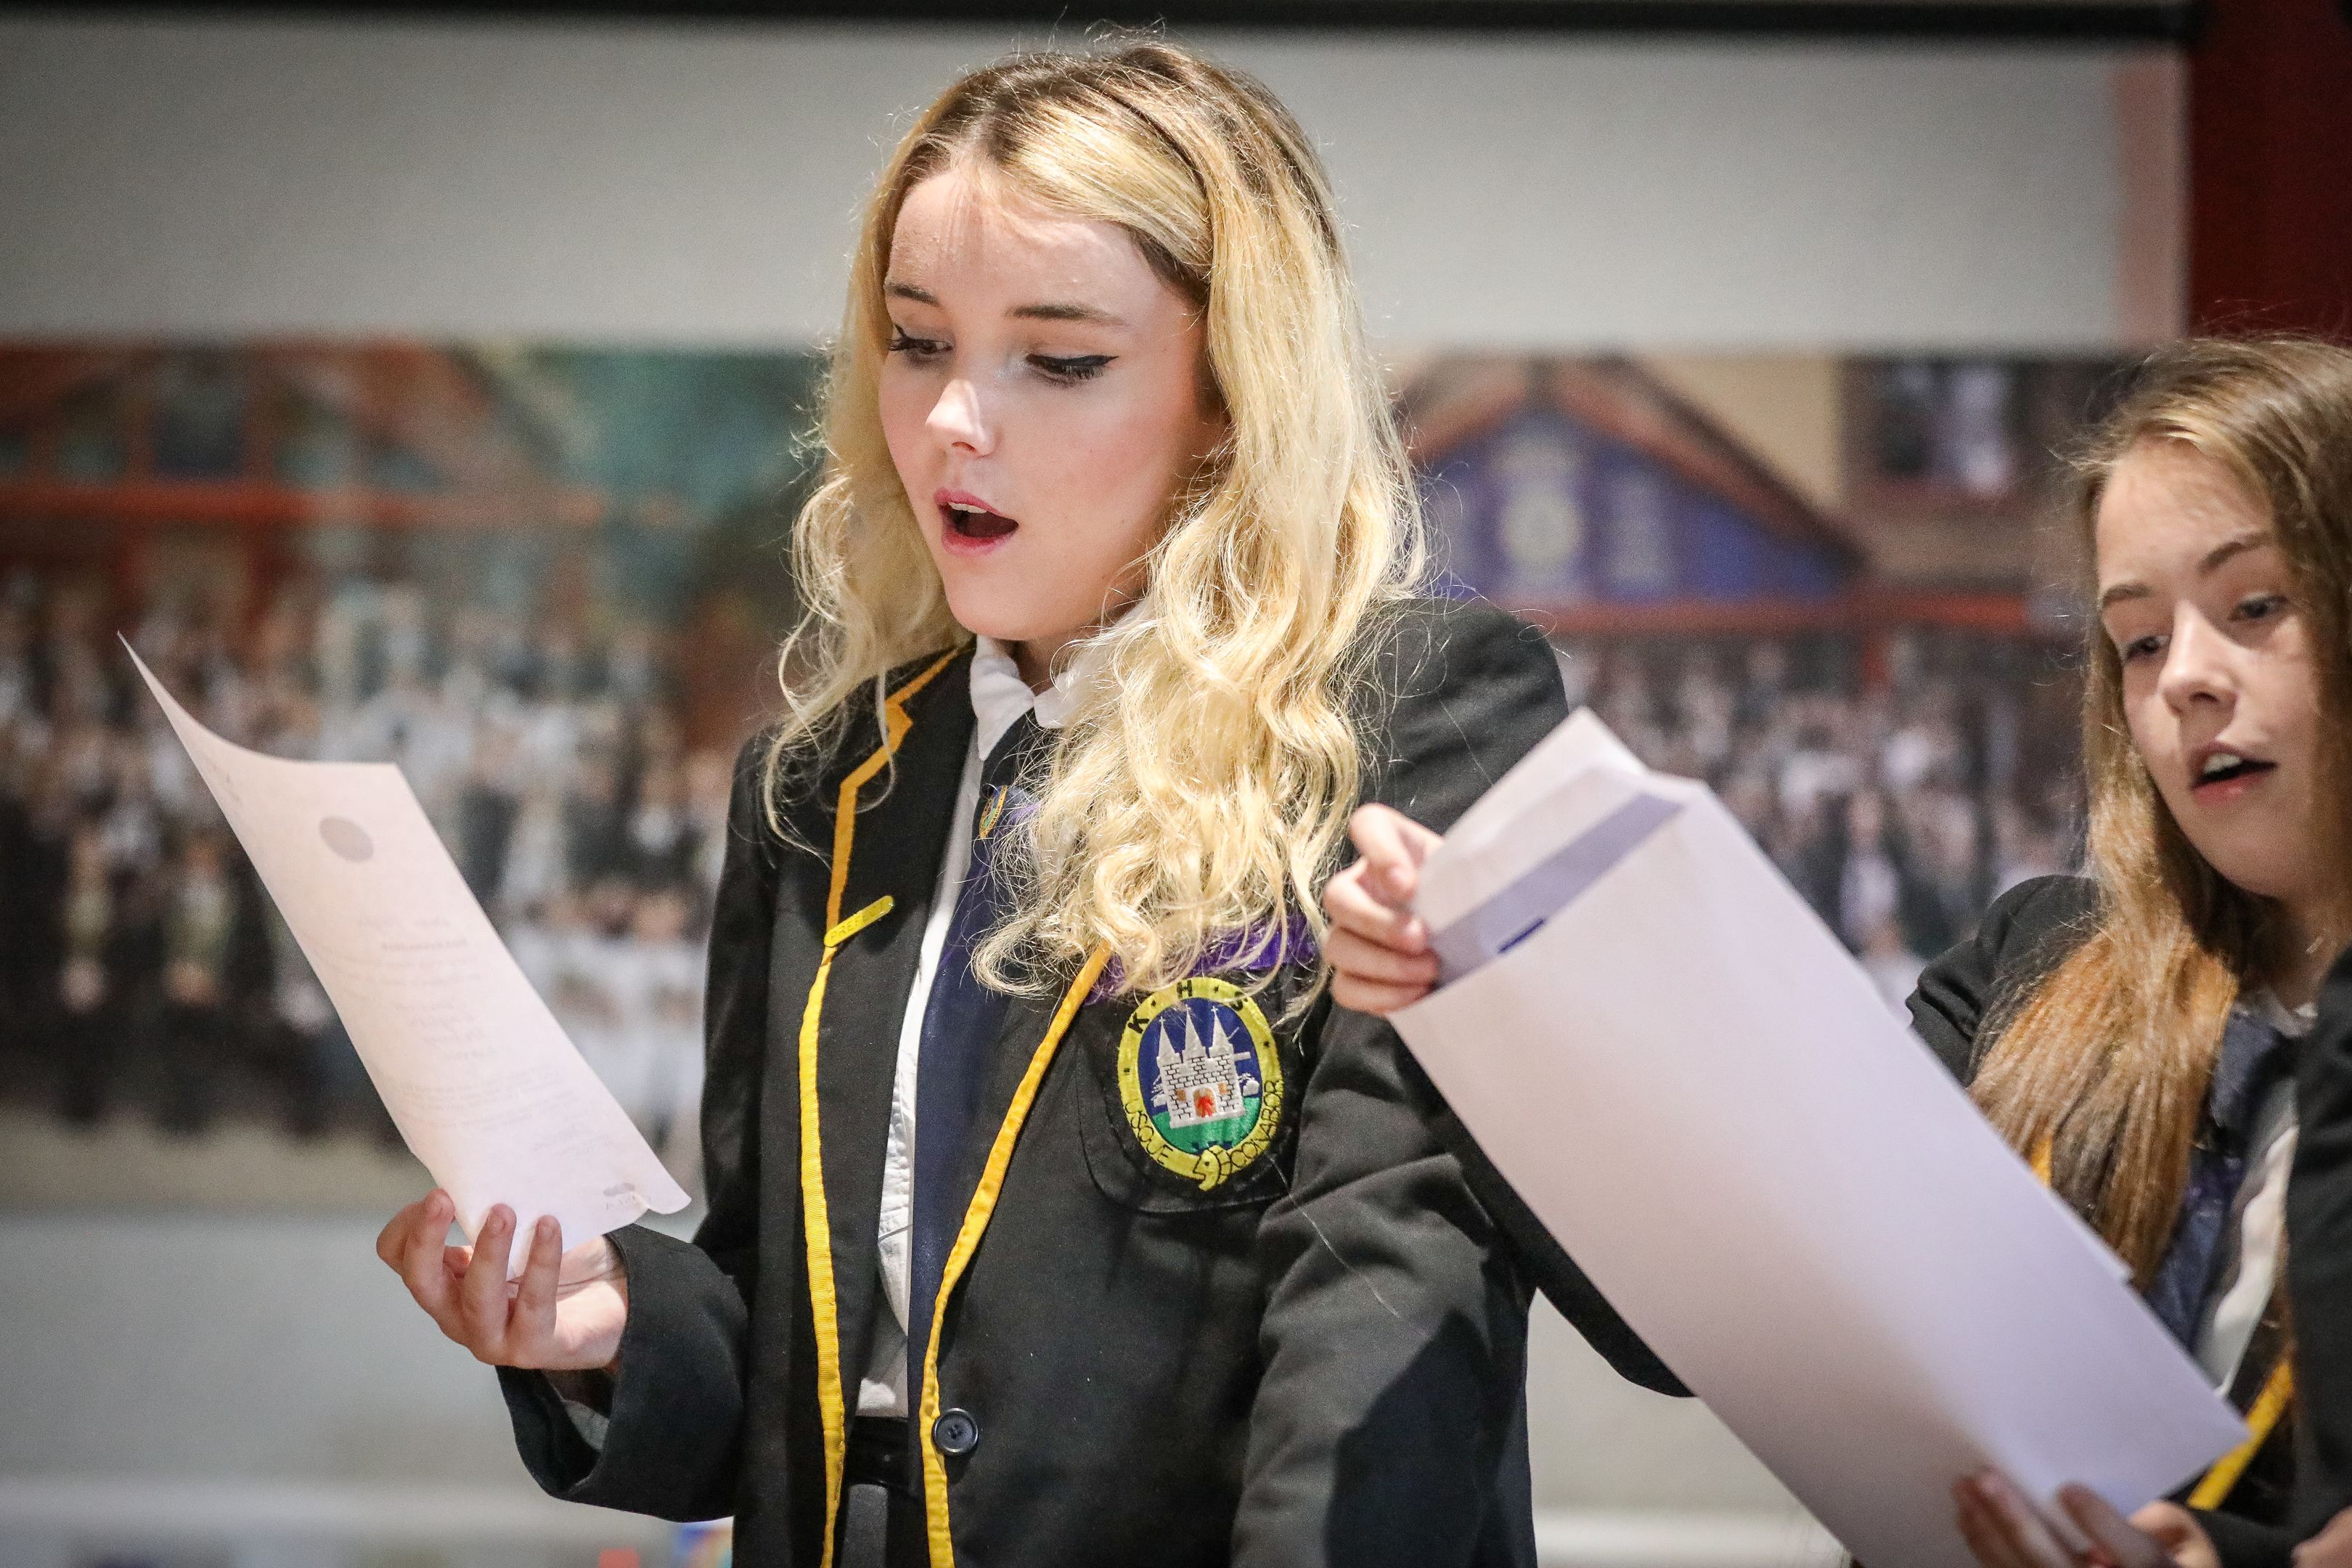 Taylor Williams (who got results to get her in to St Andrews uni) at Kirkcaldy High reacting after opening results in front of pupils teachers and parents.